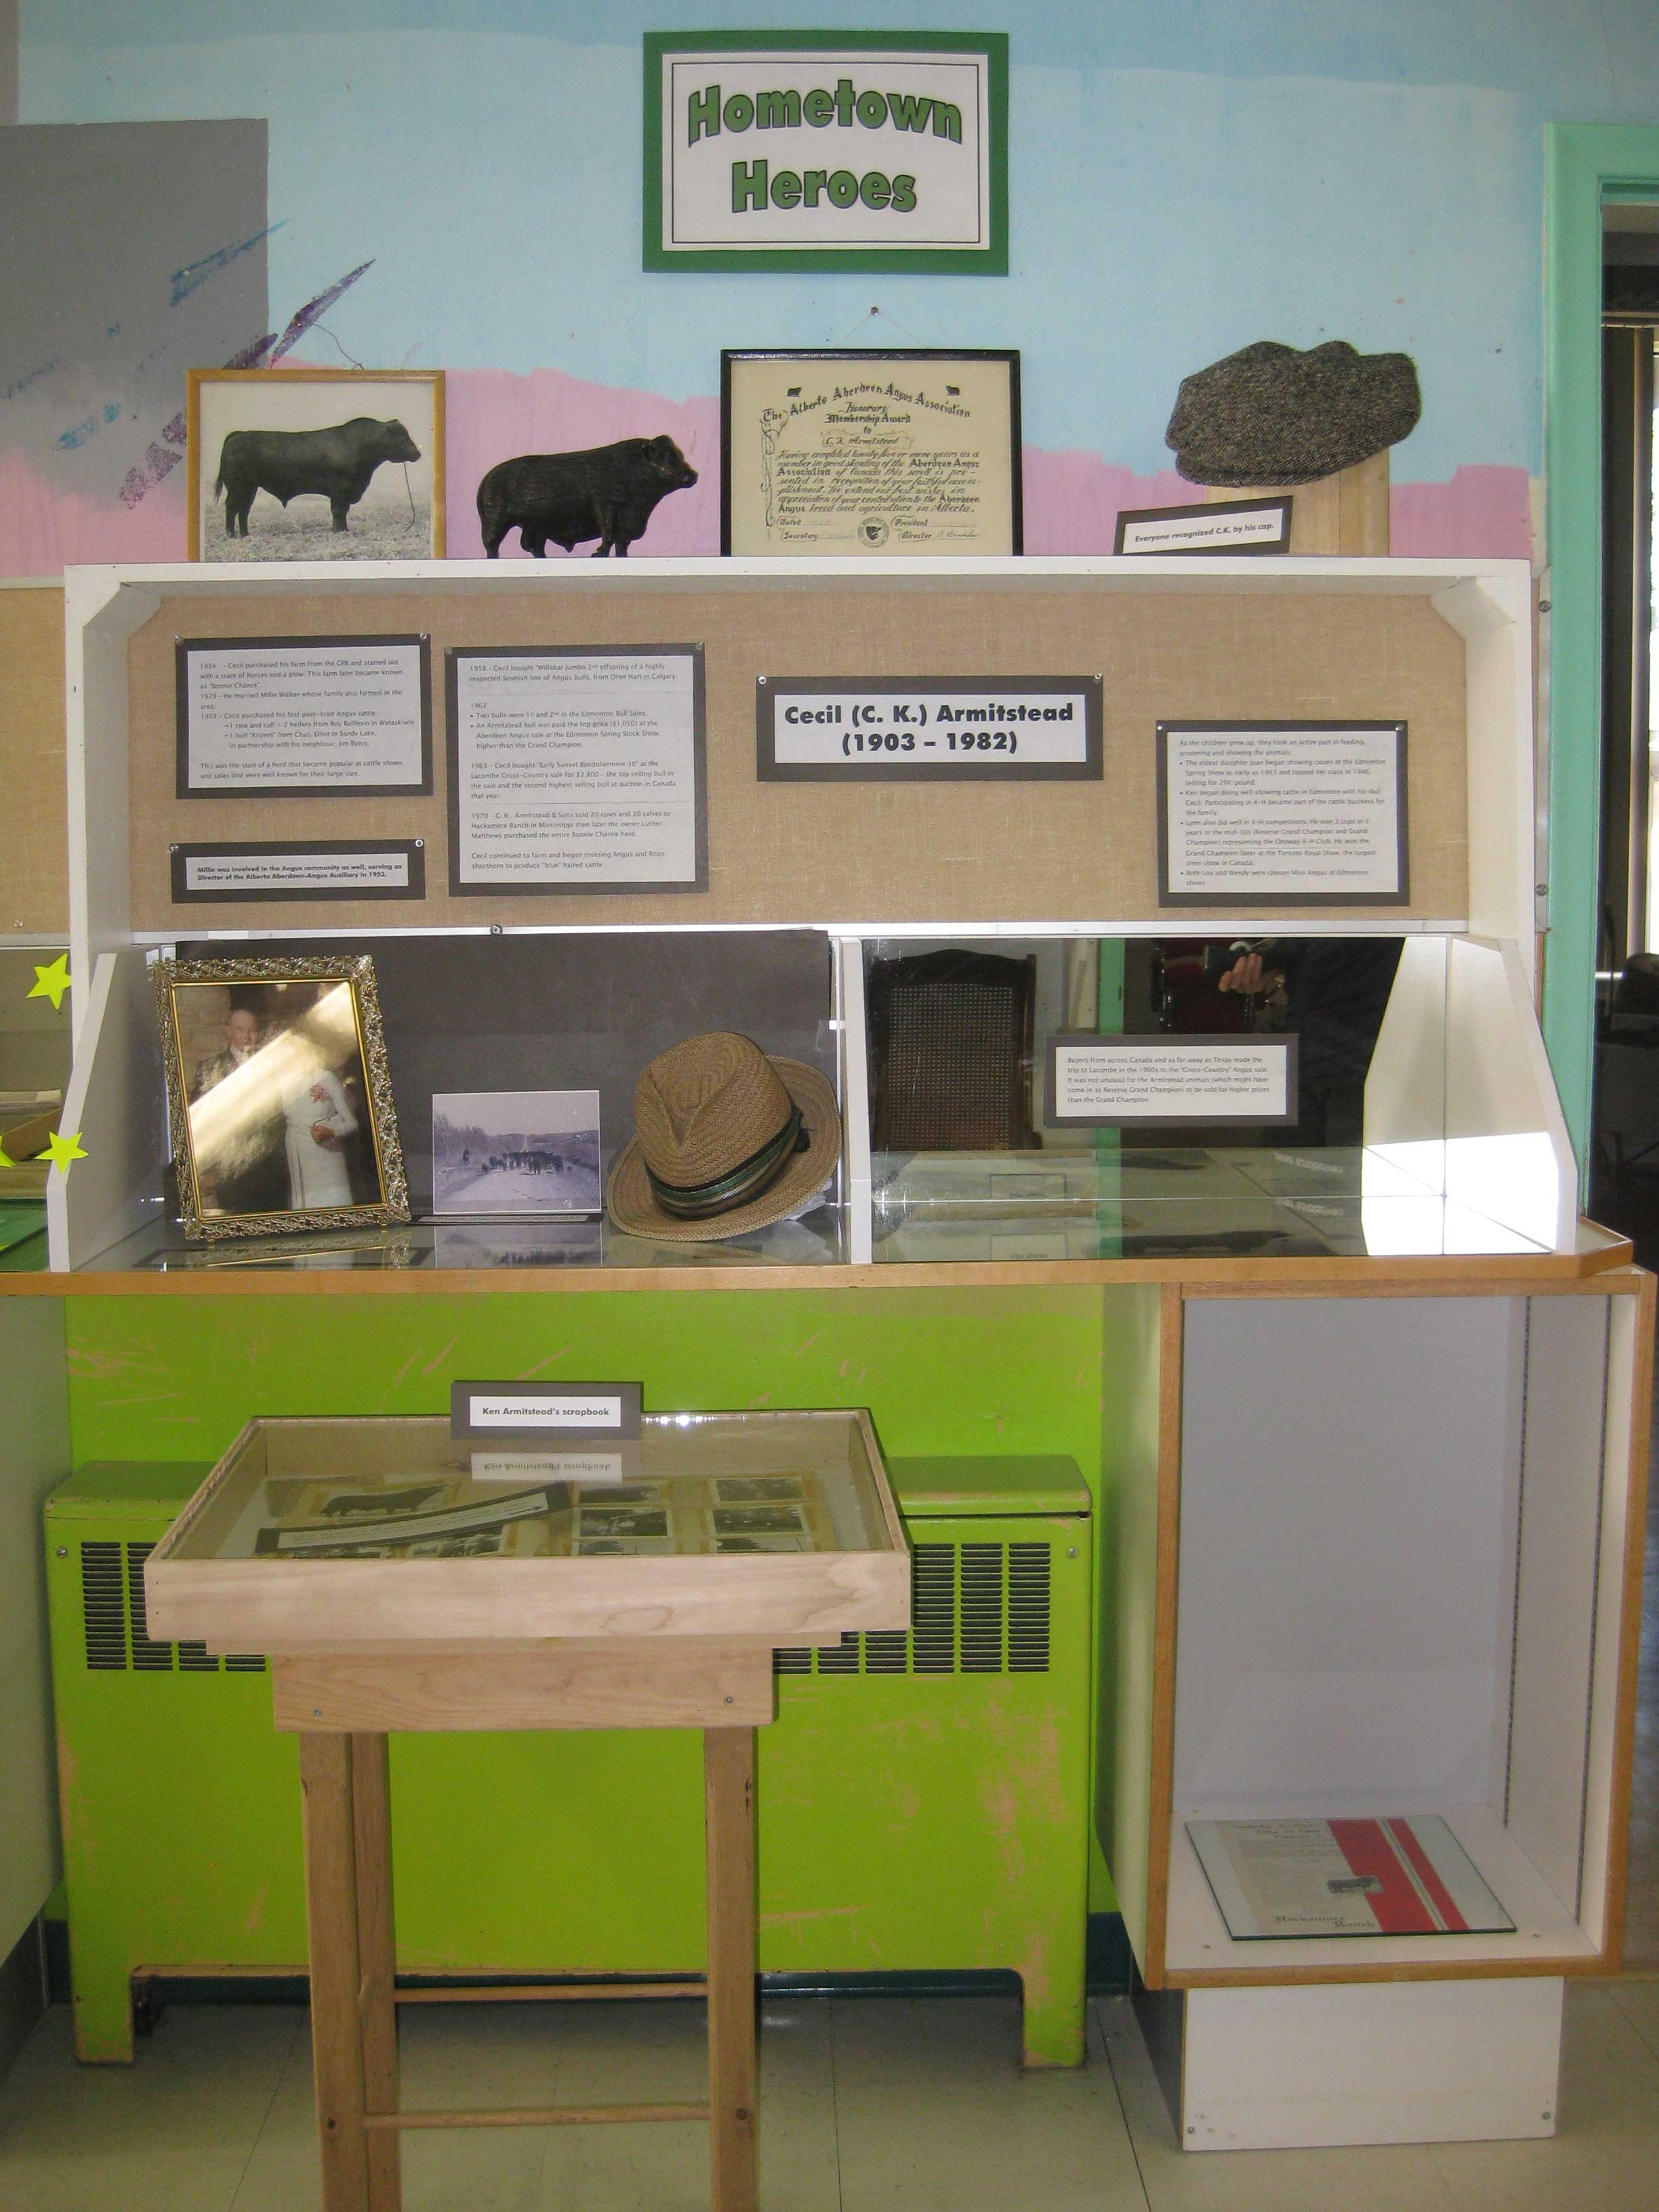 Cecil Armitstead display